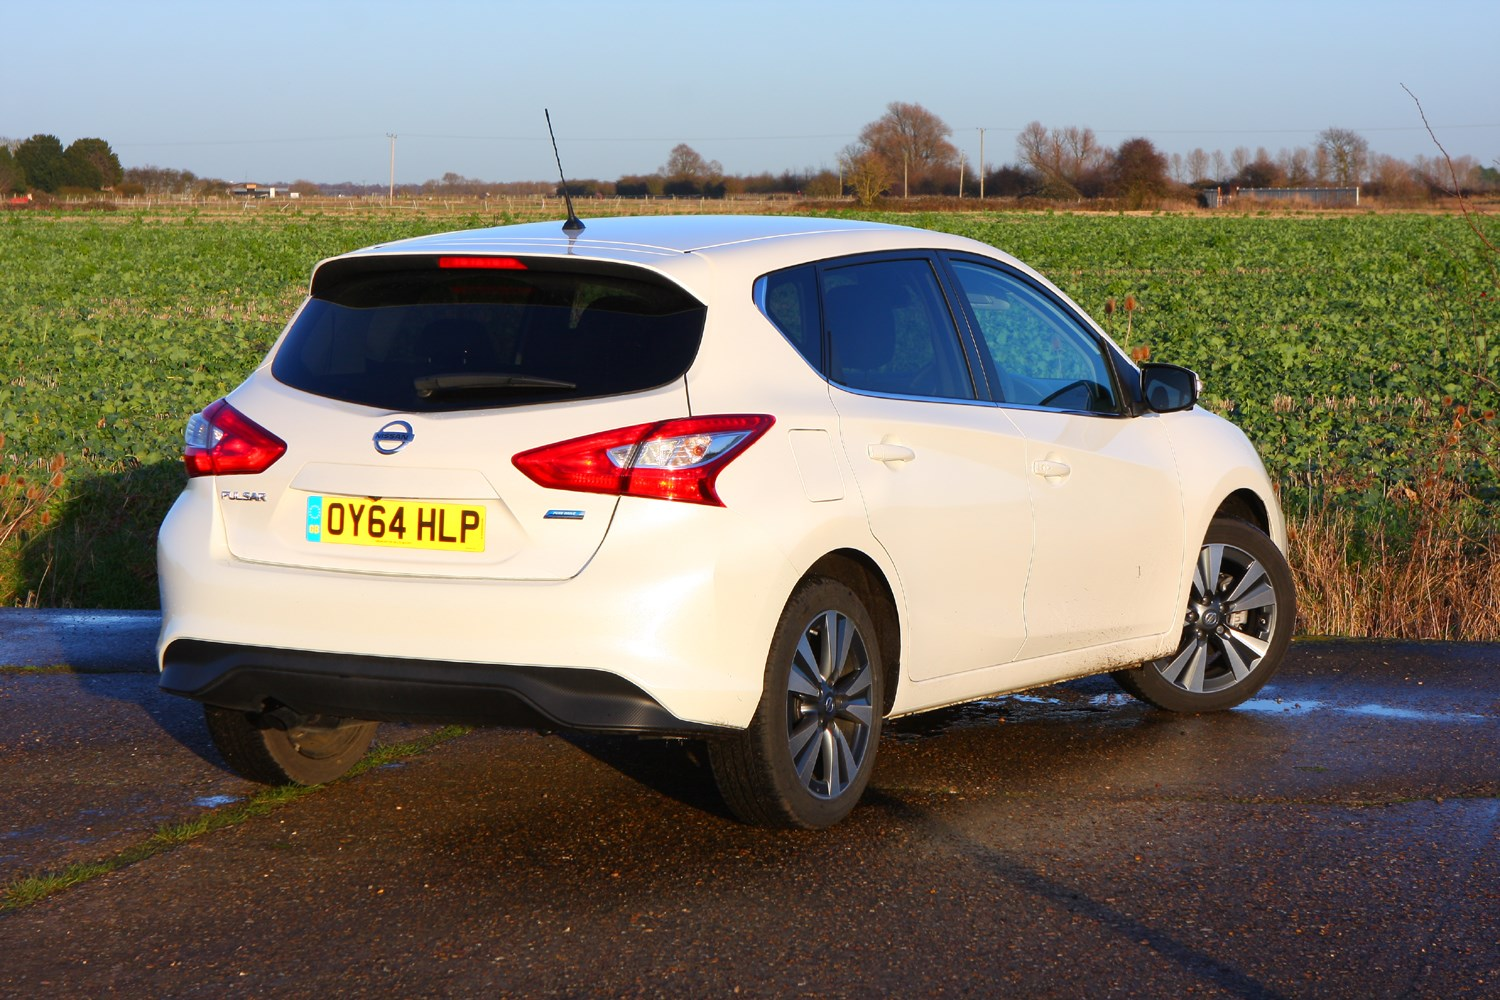 Nissan Pulsar Hatchback (2014 - ) Photos | Parkers